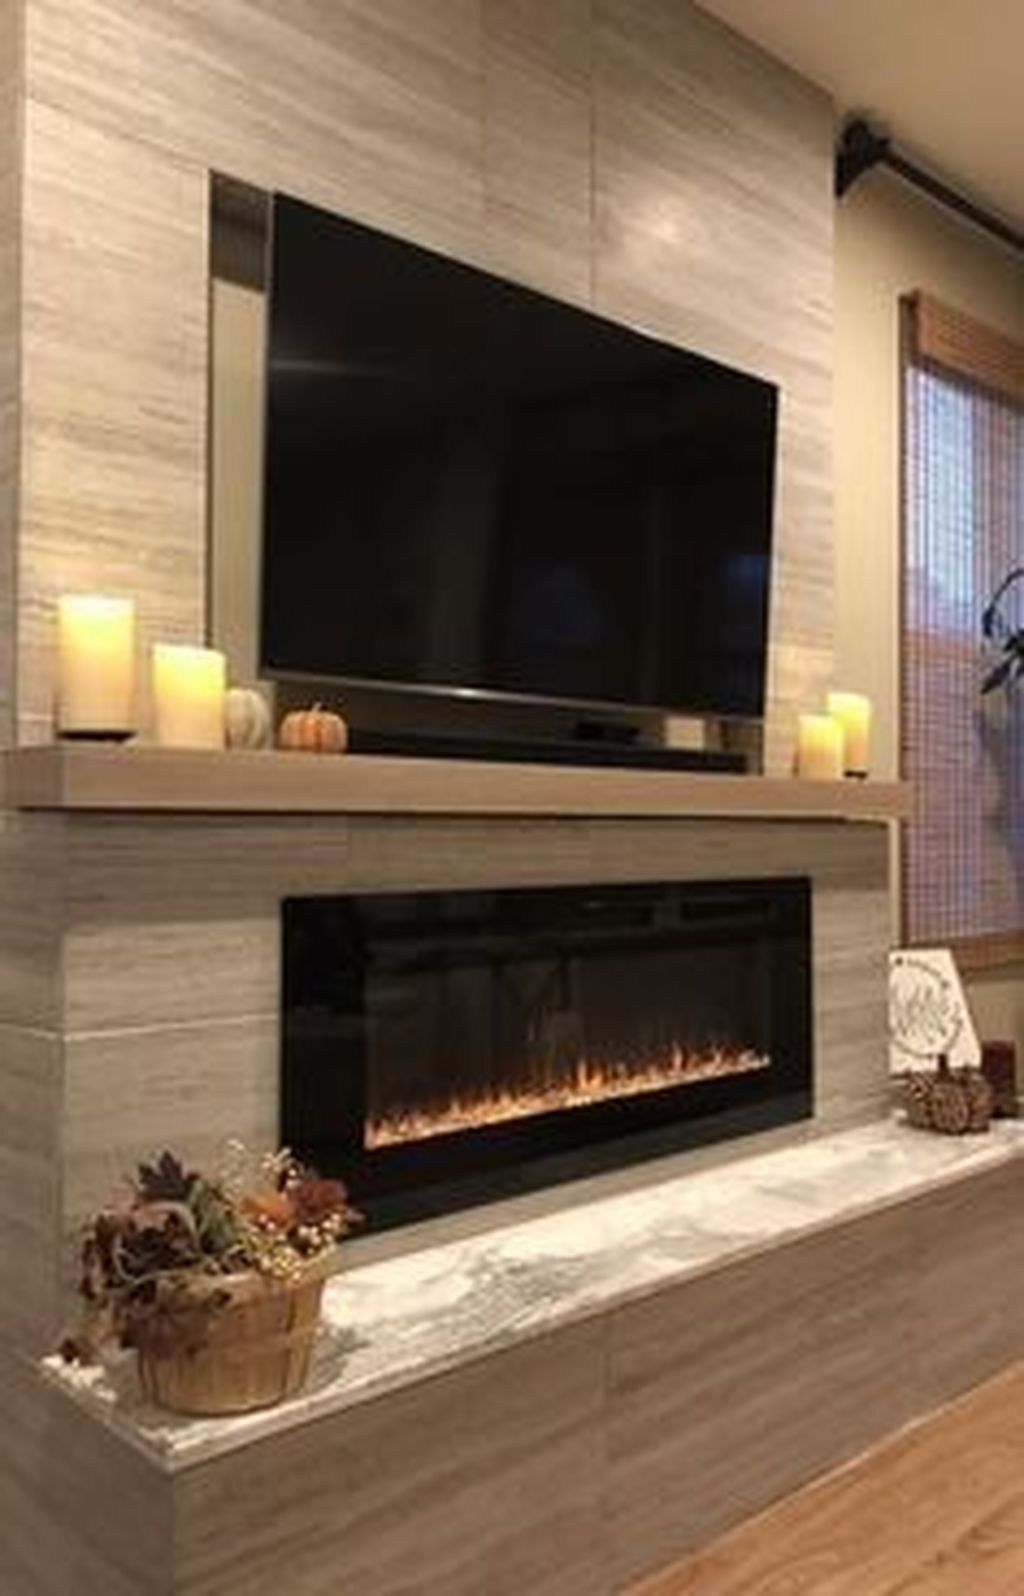 36 Popular Fireplace Design Ideas Fireplace Design Living Room With Fireplace Home Fireplace